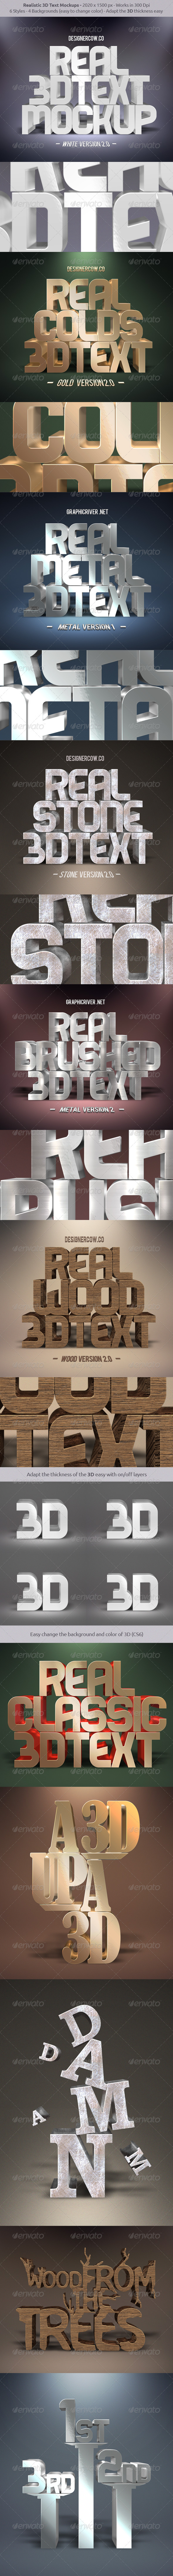 GraphicRiver Real 3D Text Mockups 8553107